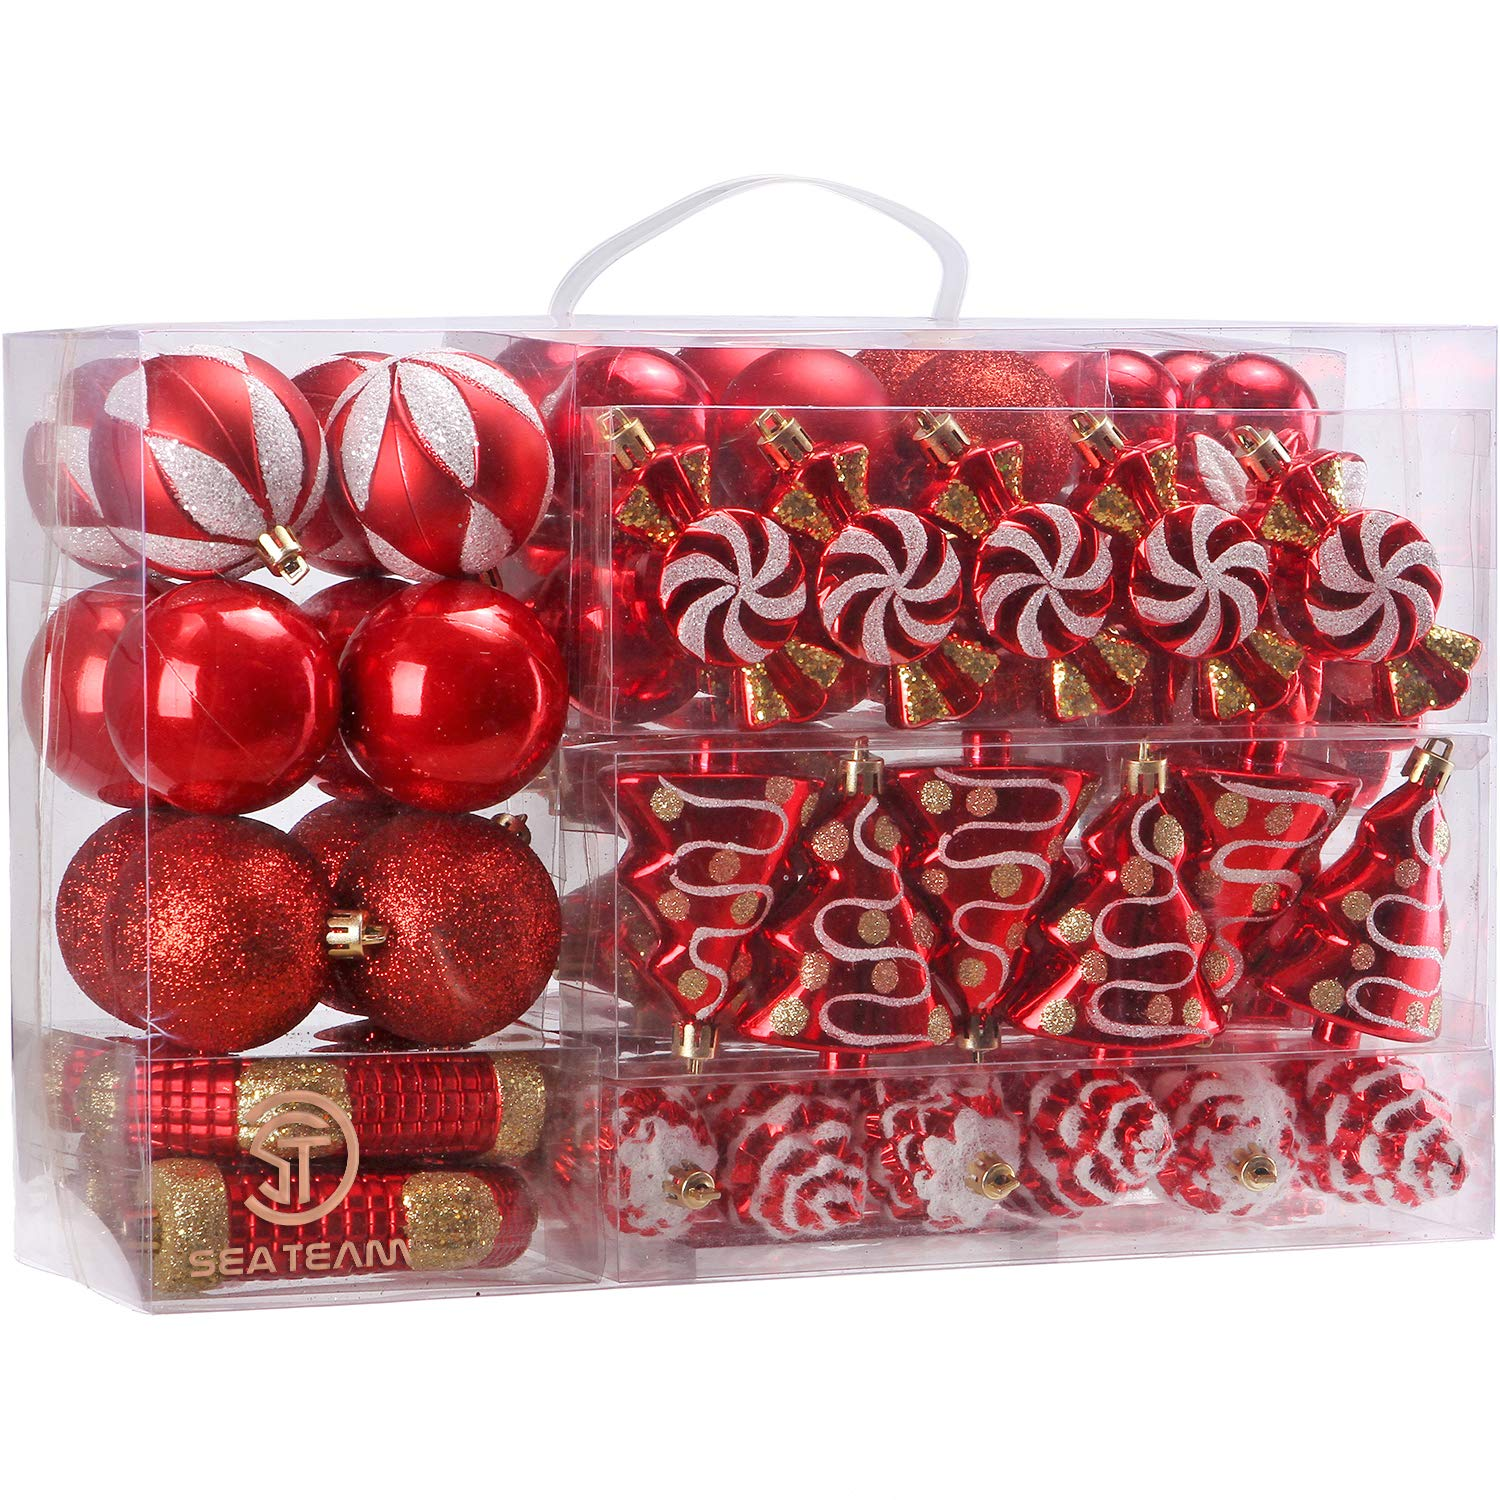 Sea Team 77-Pack Assorted Shatterproof Christmas Balls Christmas Ornaments Set Decorative Baubles Pendants with Reusable Hand-held Gift Package for Xmas Tree (Red)